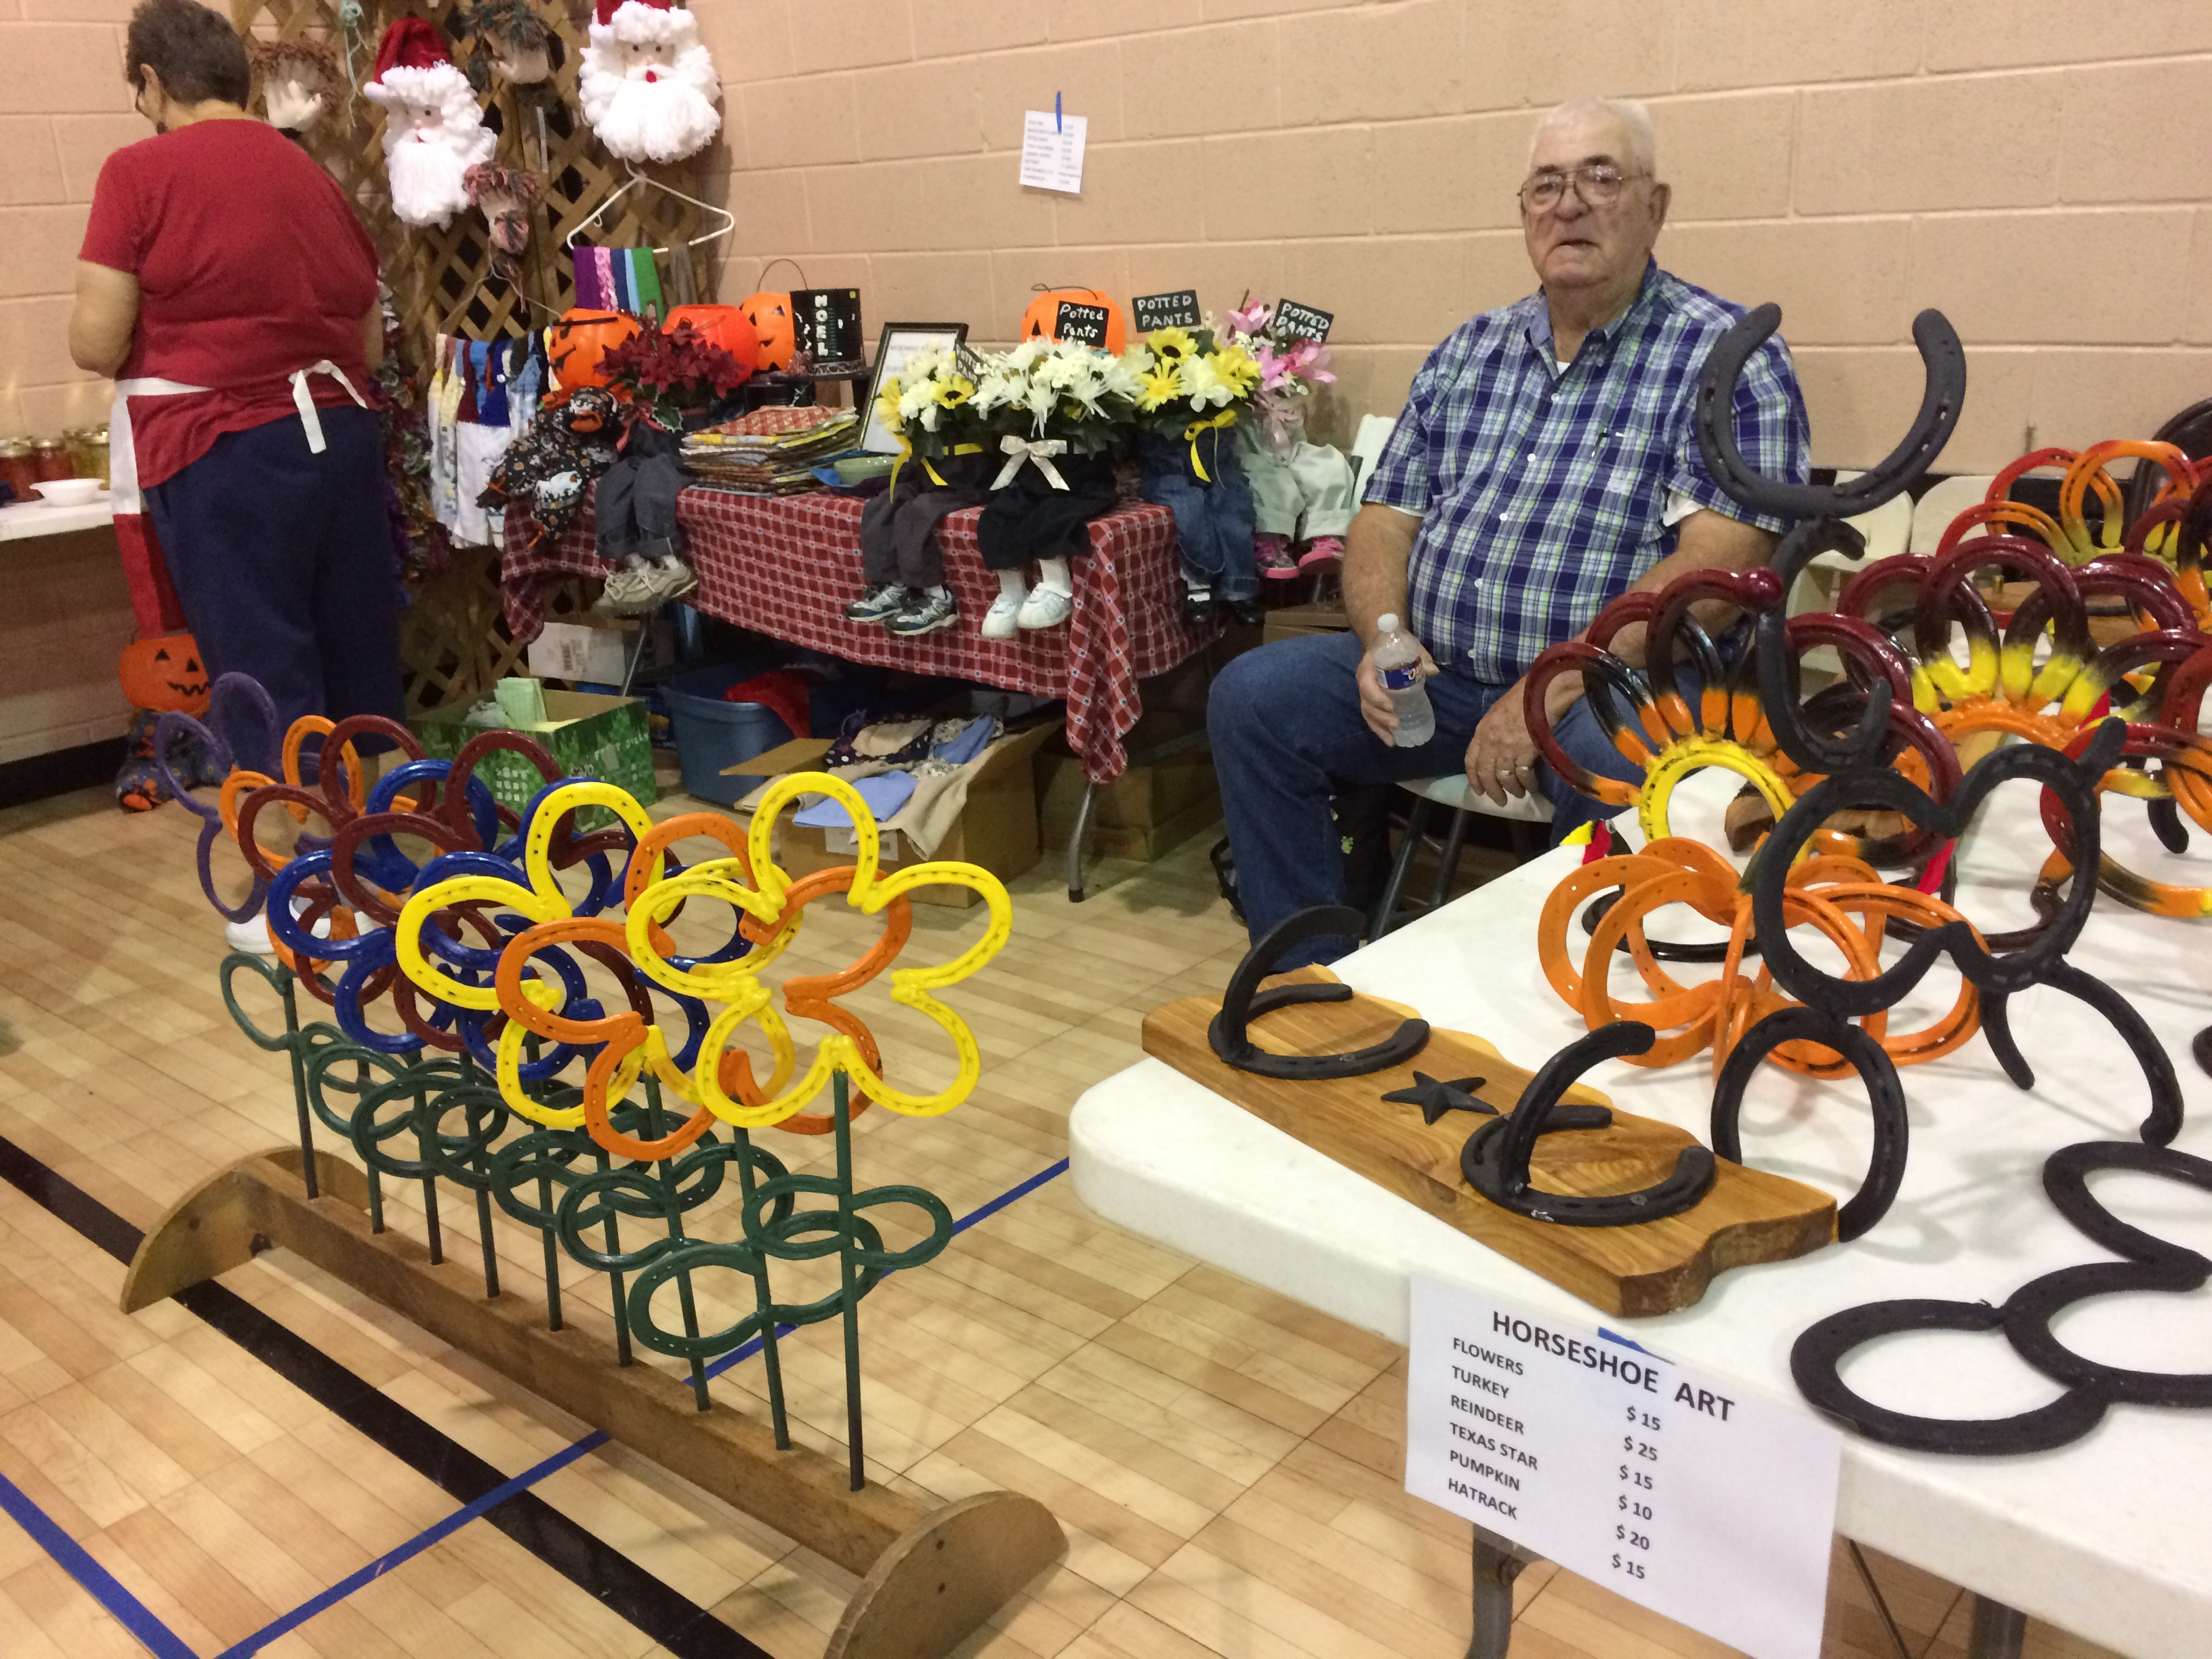 Handmade Horseshoe Art And Some Potted Pants Pecan Plantation Vfd